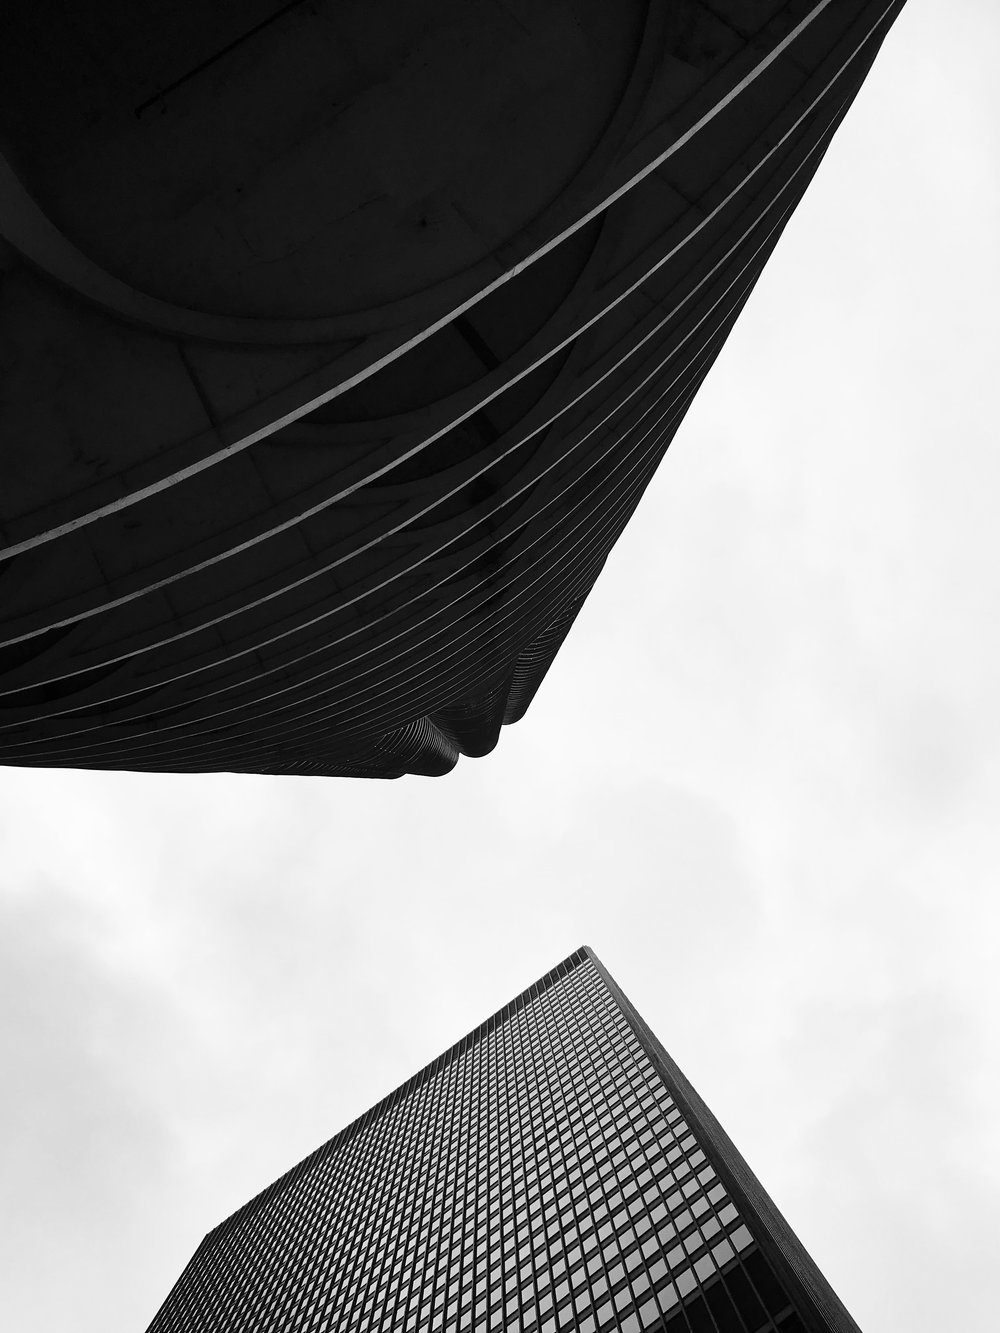 Round and Square, Chicago, 10/22/2017